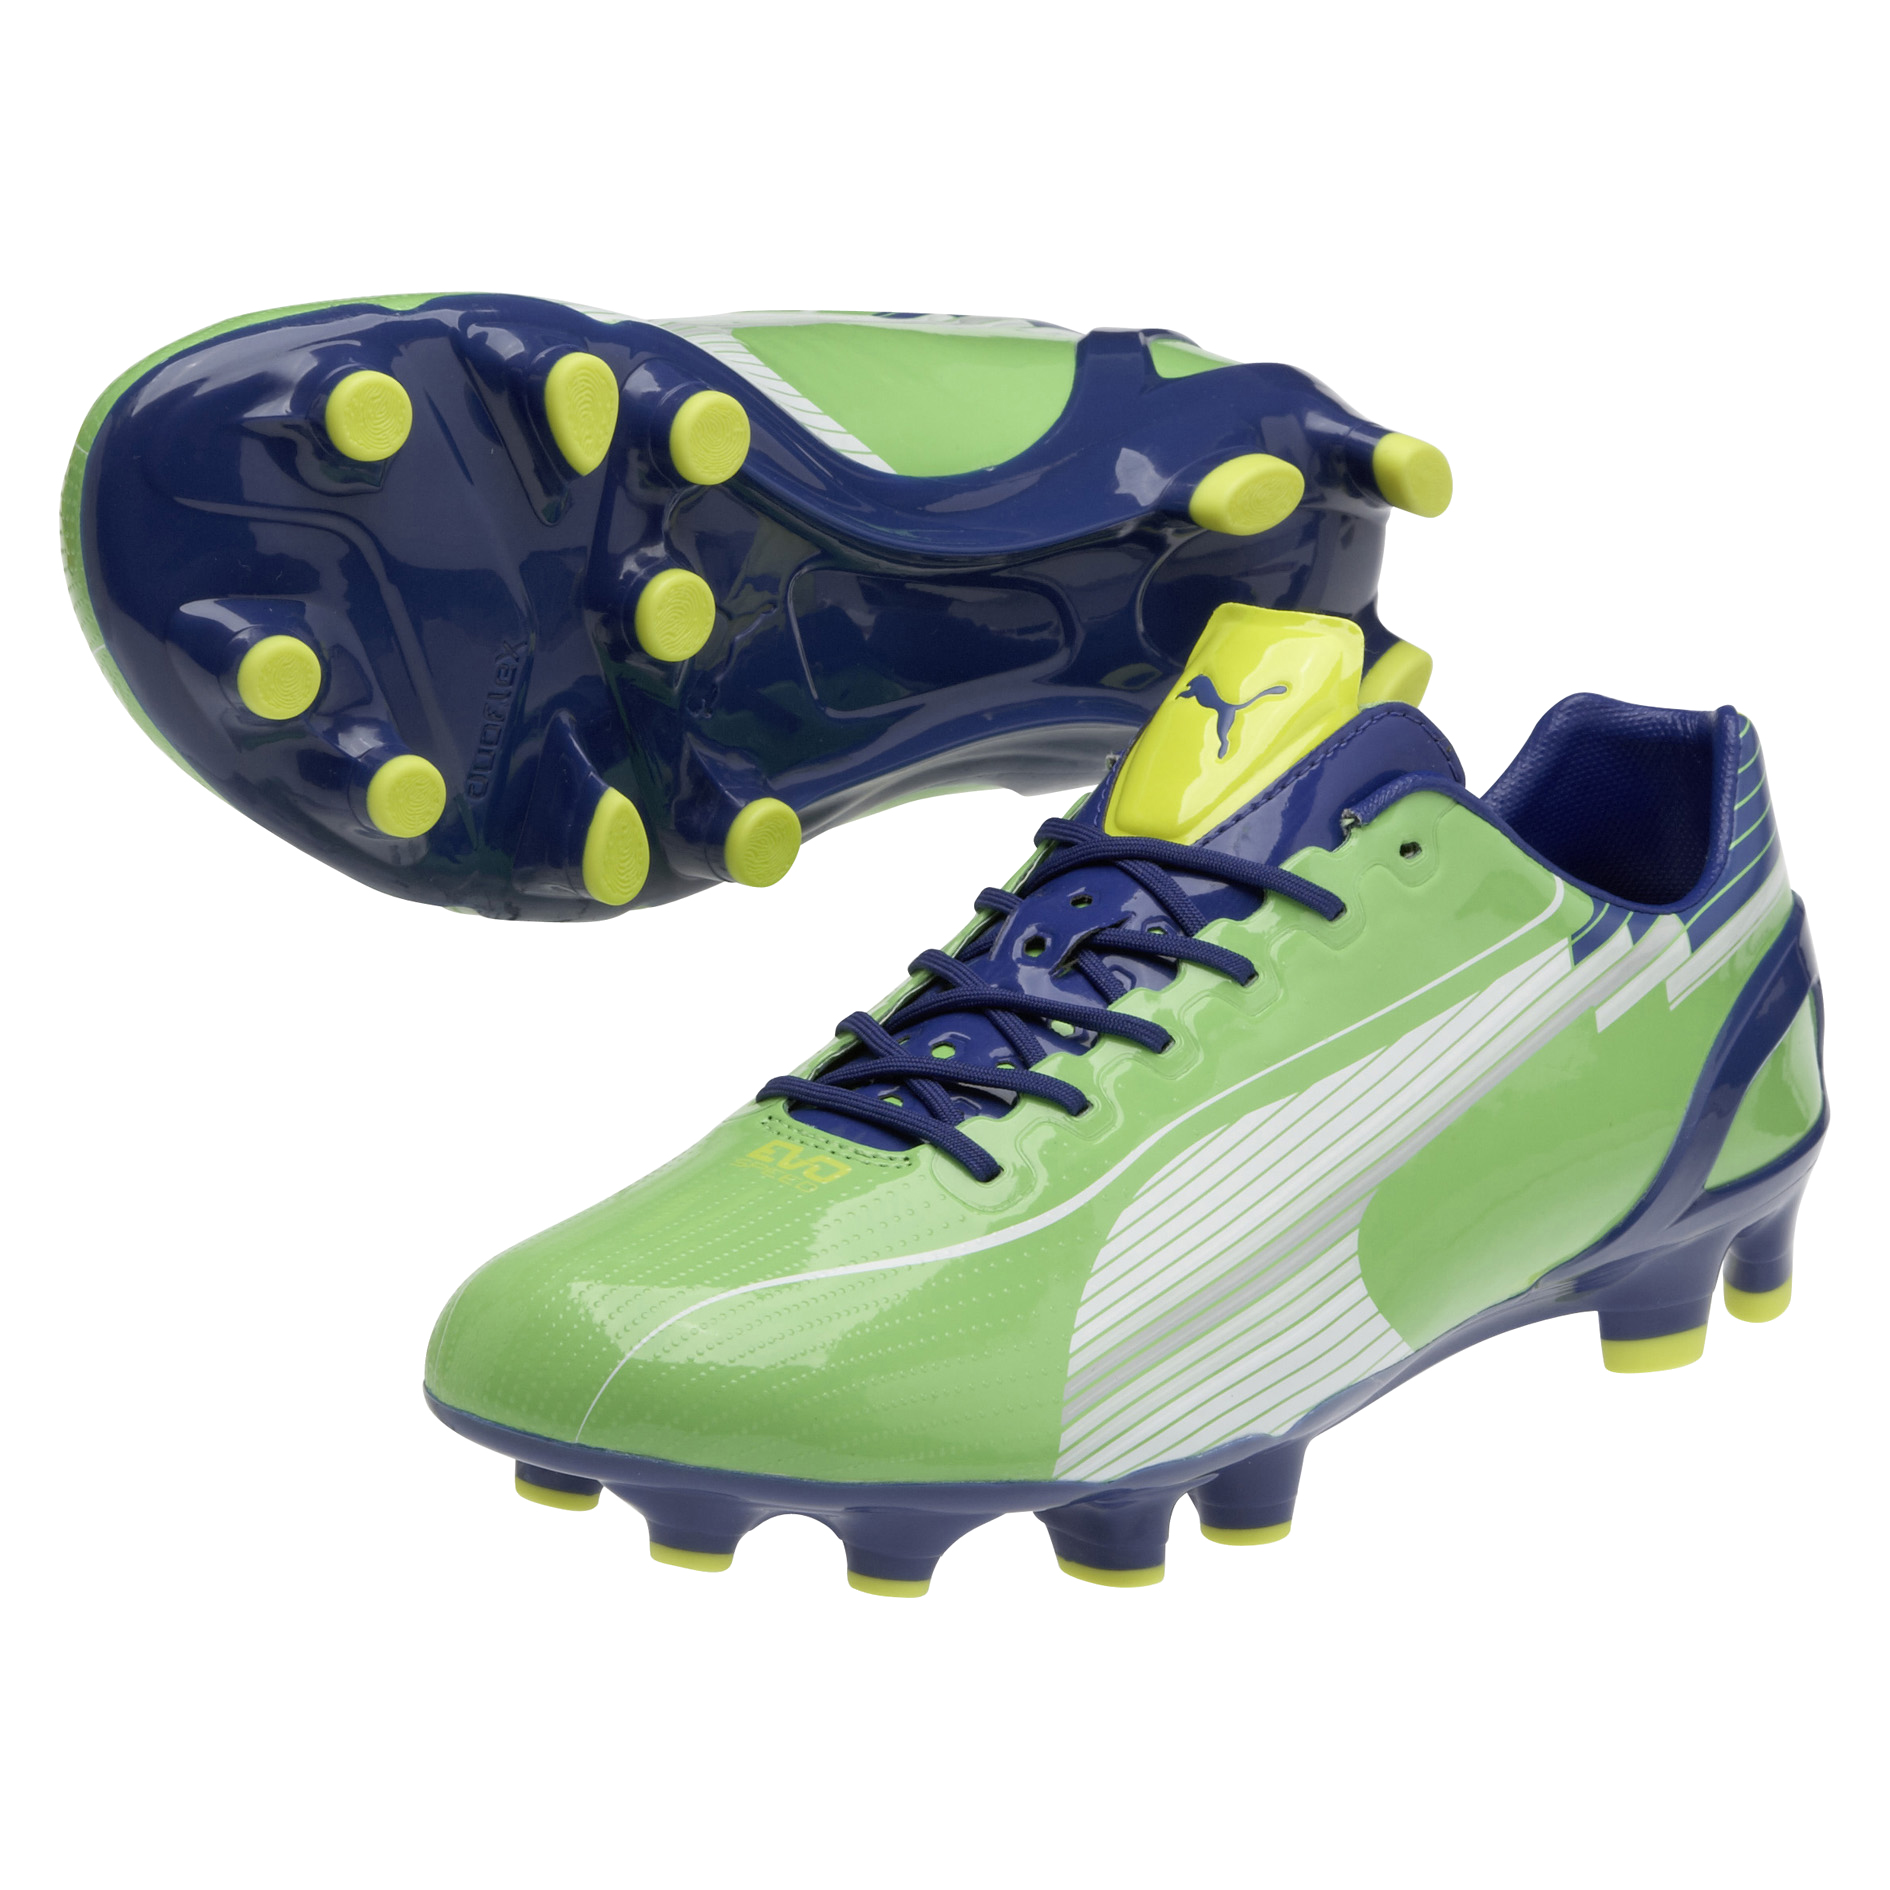 Puma evoSPEED 1 Firm Ground Football Boots - Jasmin Green/Monaco Blue/Fluo Yellow